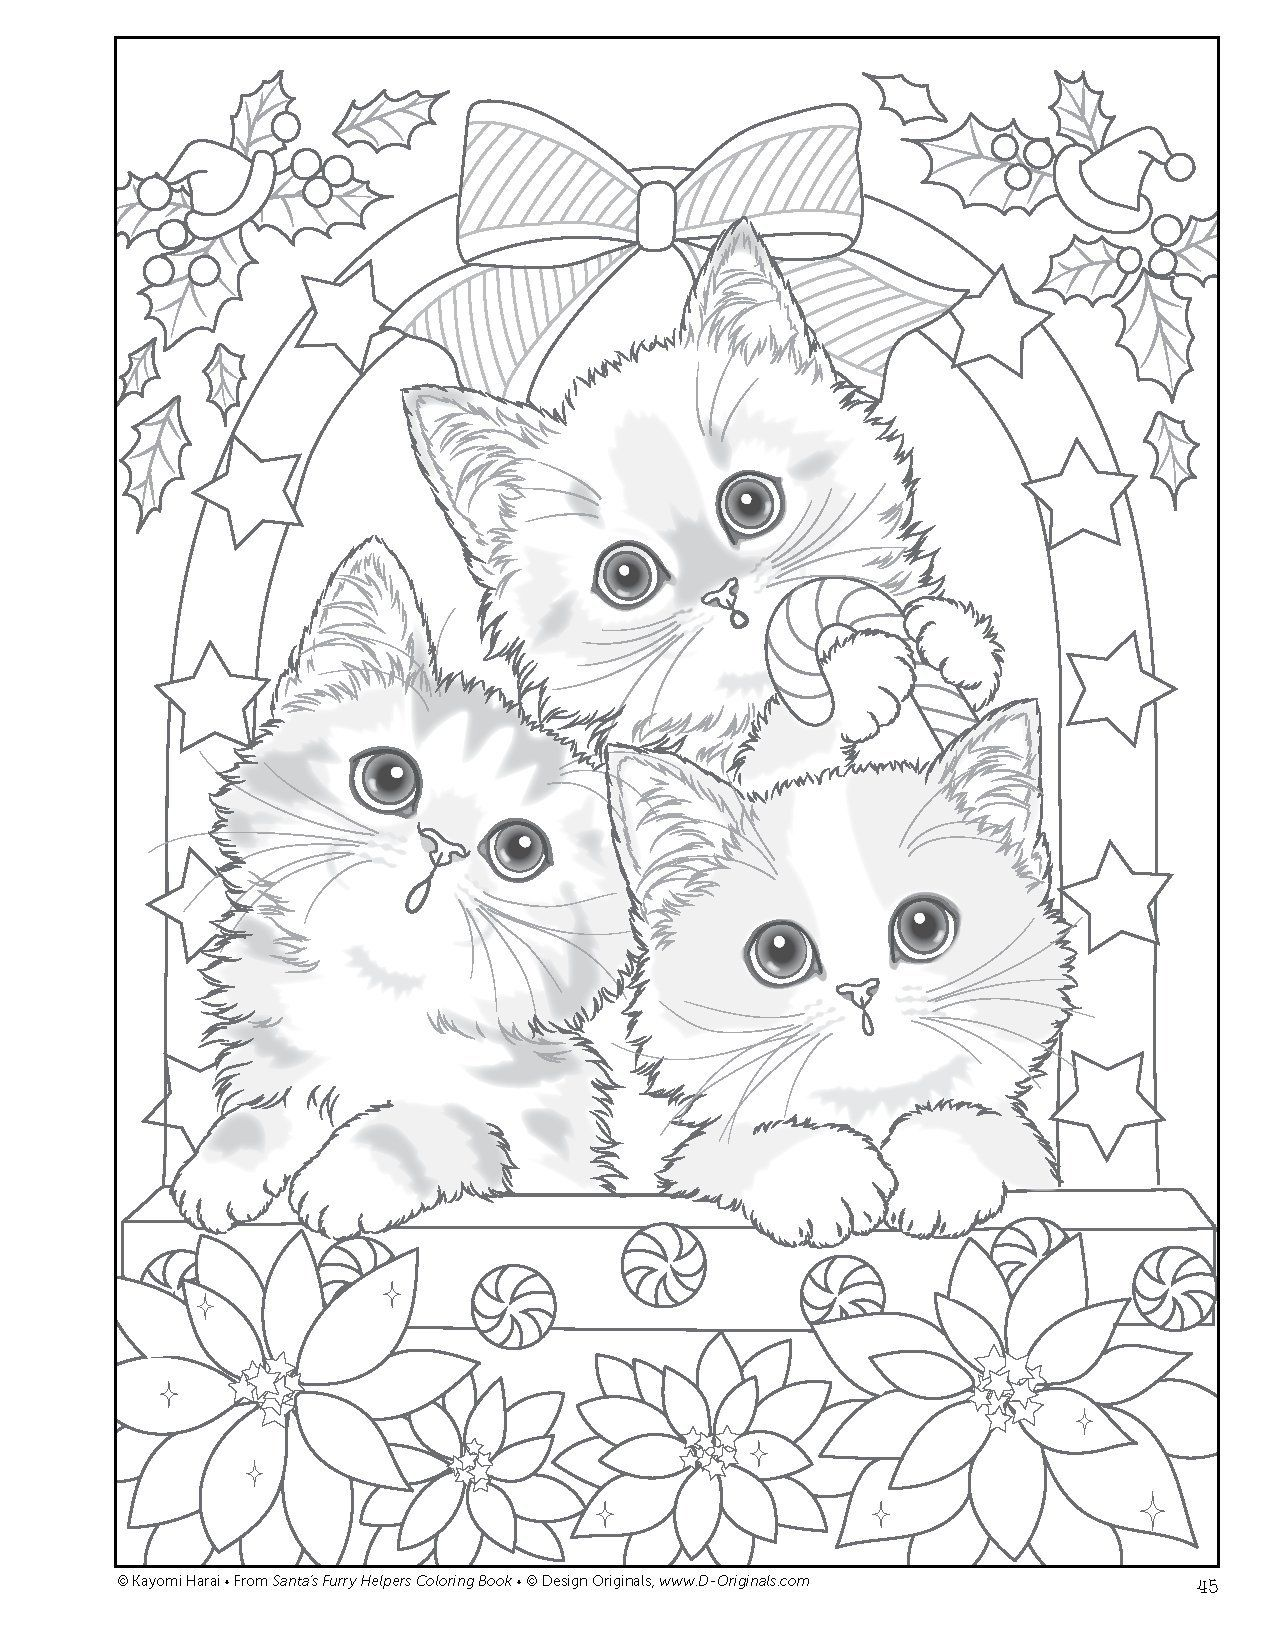 Katzen Ausmalbilder Für Erwachsene : Santas Furry Helpers Coloring Book Colouring Books Amazon De